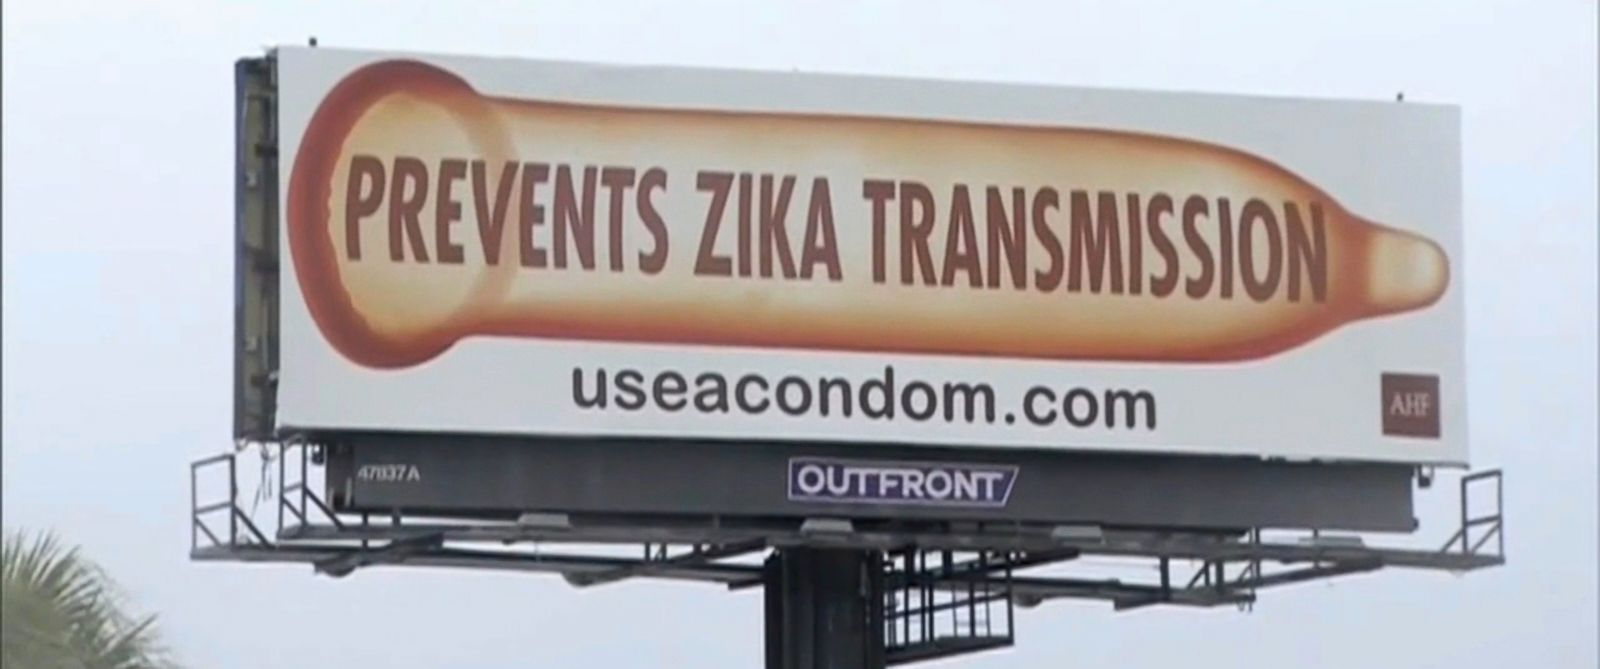 IT'S PORN BEACH FLORIDA PEOPLE: Health Group Accuses Florida Officials of Removing Zika Billboards